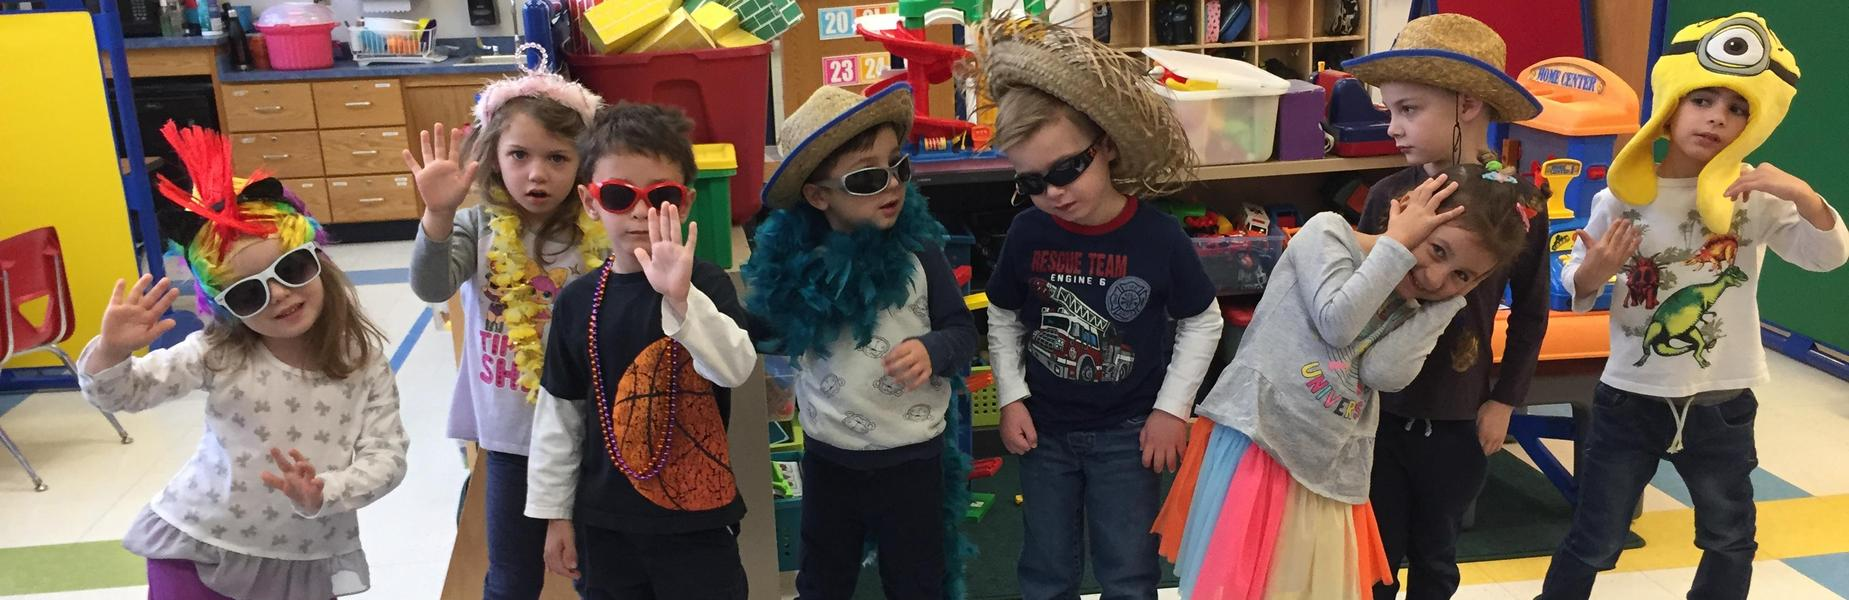 Preschoolers have fun with dress up at Lincoln School.  Pictured here is a line of preschoolers wearing various hats and sunglasses.